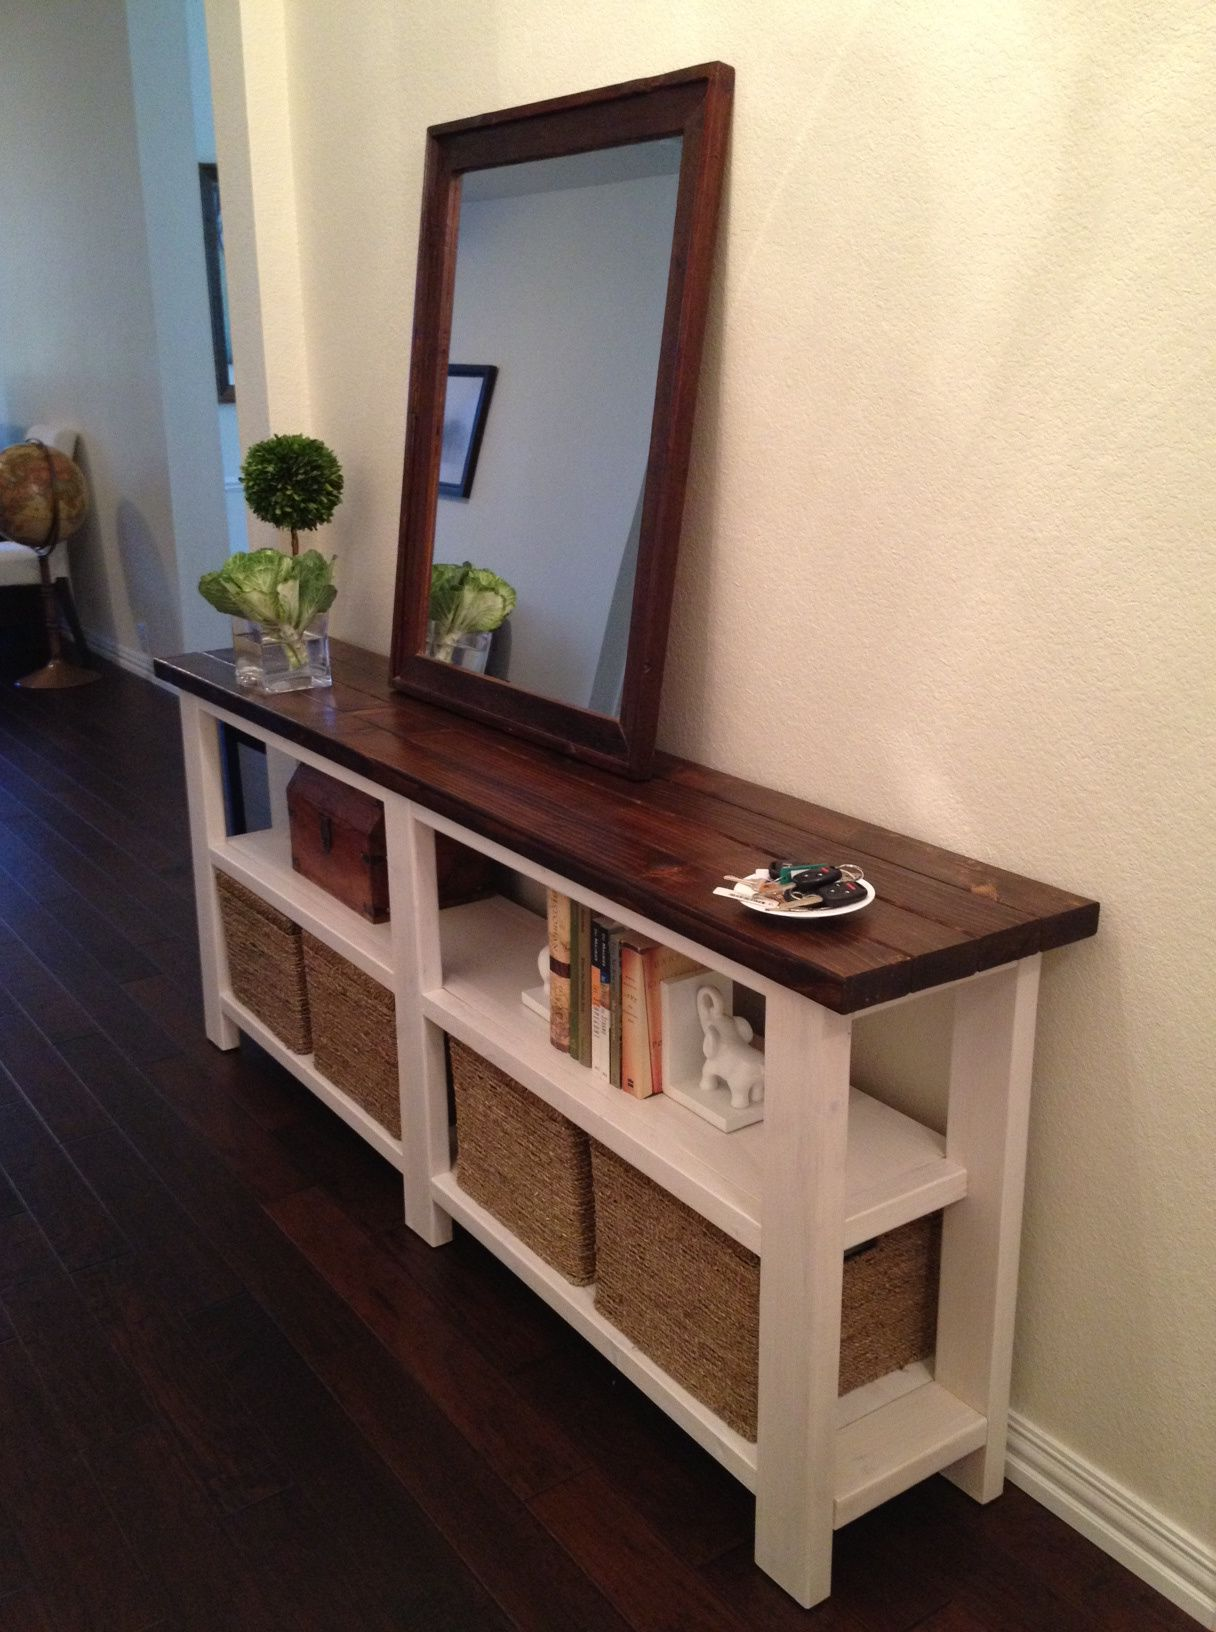 Diy crate console table - Rustic Chic Console Table